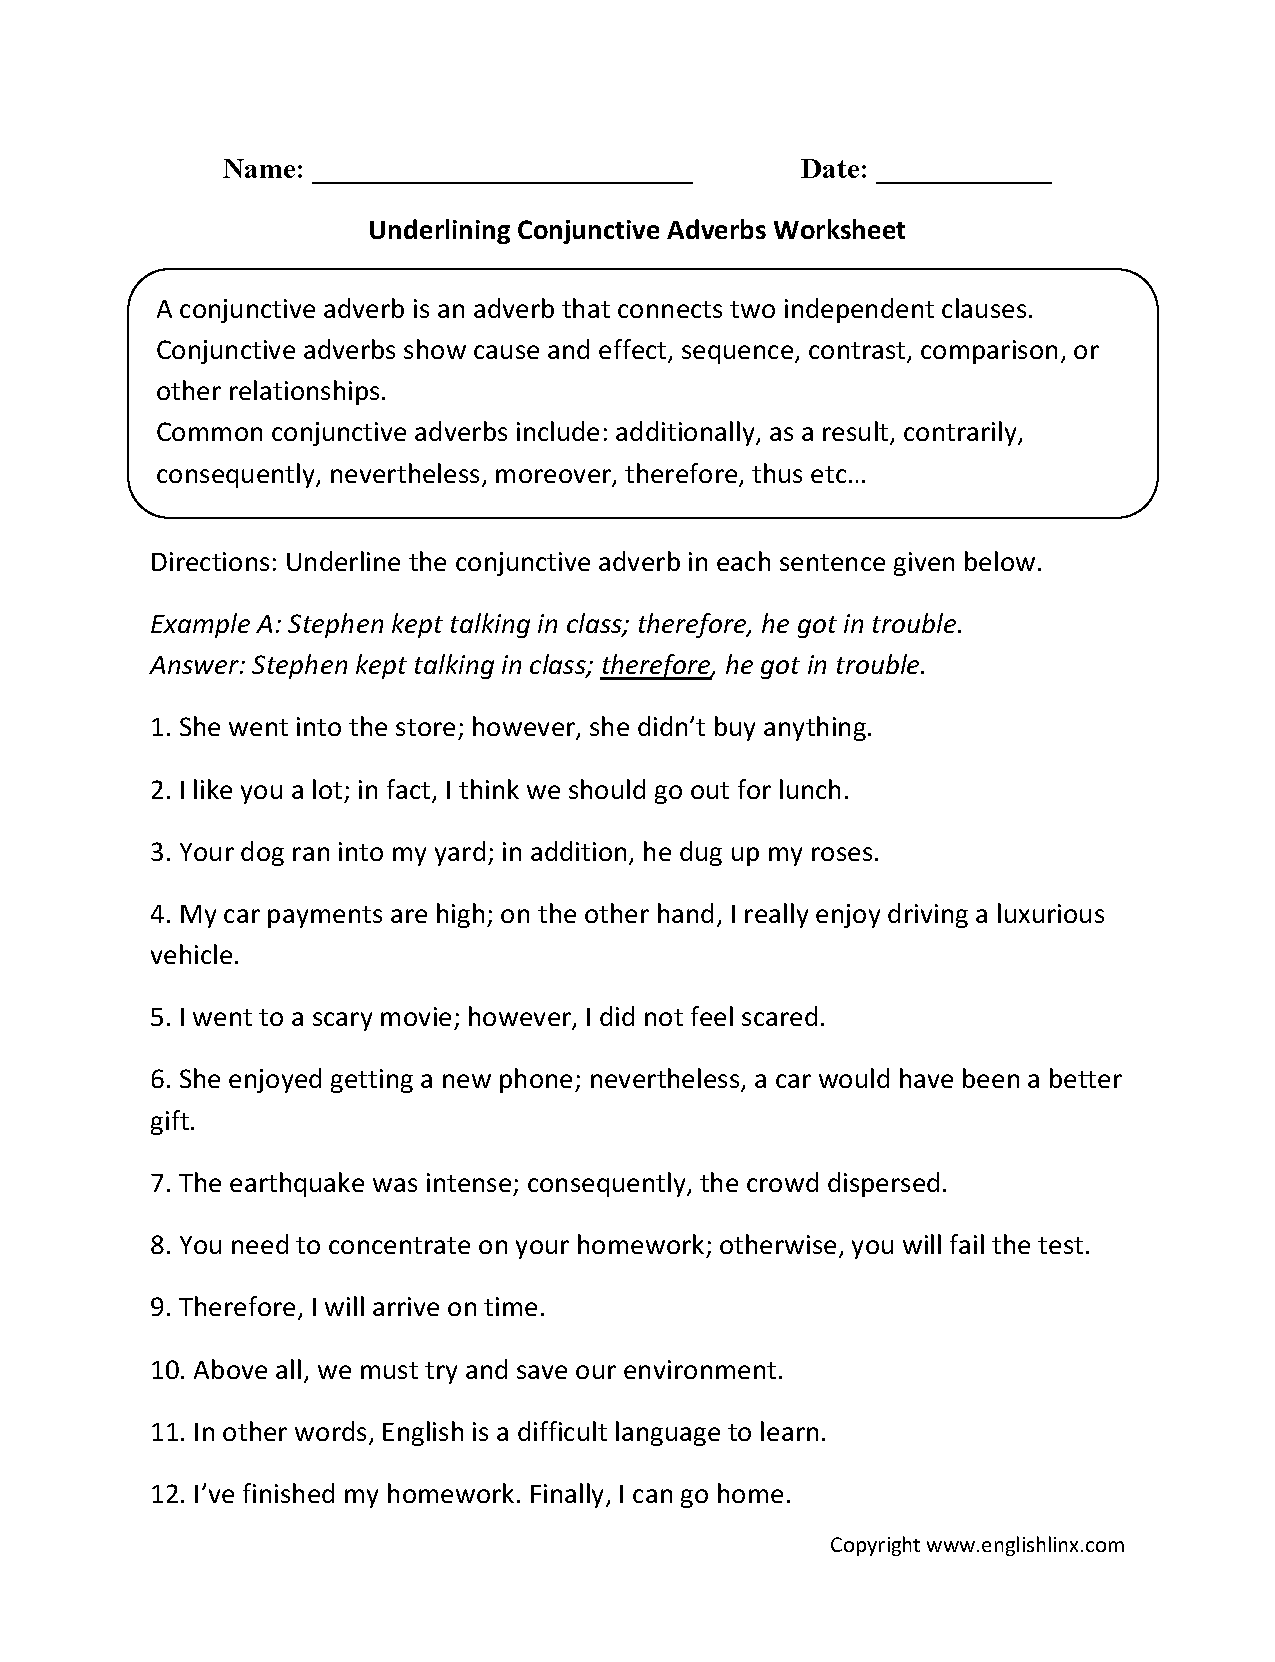 Aldiablosus  Winsome Englishlinxcom  Conjunctions Worksheets With Extraordinary Worksheet With Appealing Counting Nickels And Pennies Worksheet Also Order Of Operation Worksheet Pdf In Addition Earthquake Worksheets Middle School And Tax Computation Worksheet  As Well As Worksheets Worksheets Additionally Sharon Wells Math Worksheets From Englishlinxcom With Aldiablosus  Extraordinary Englishlinxcom  Conjunctions Worksheets With Appealing Worksheet And Winsome Counting Nickels And Pennies Worksheet Also Order Of Operation Worksheet Pdf In Addition Earthquake Worksheets Middle School From Englishlinxcom